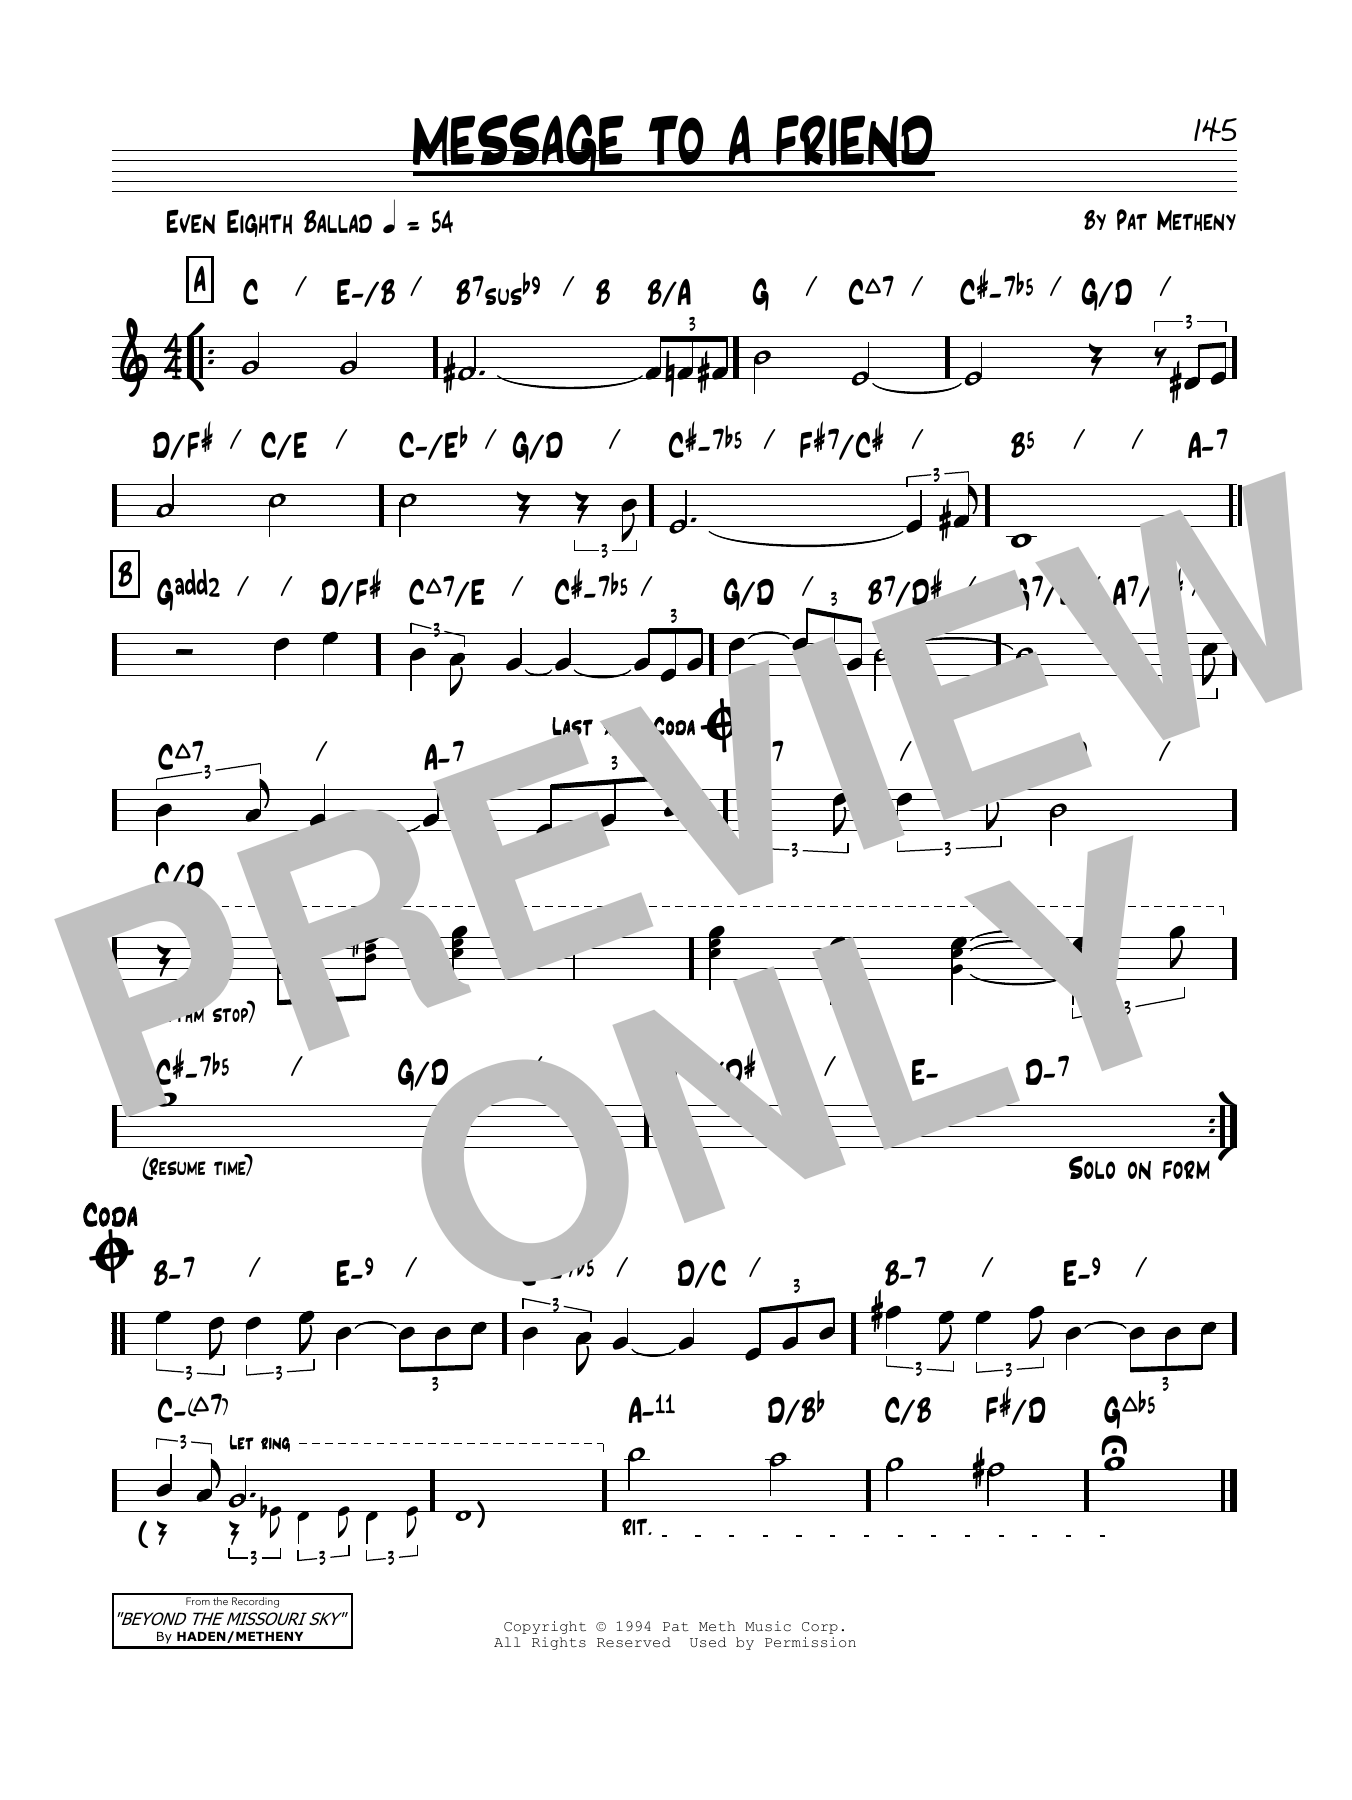 Pat Metheny Message To A Friend sheet music notes and chords. Download Printable PDF.